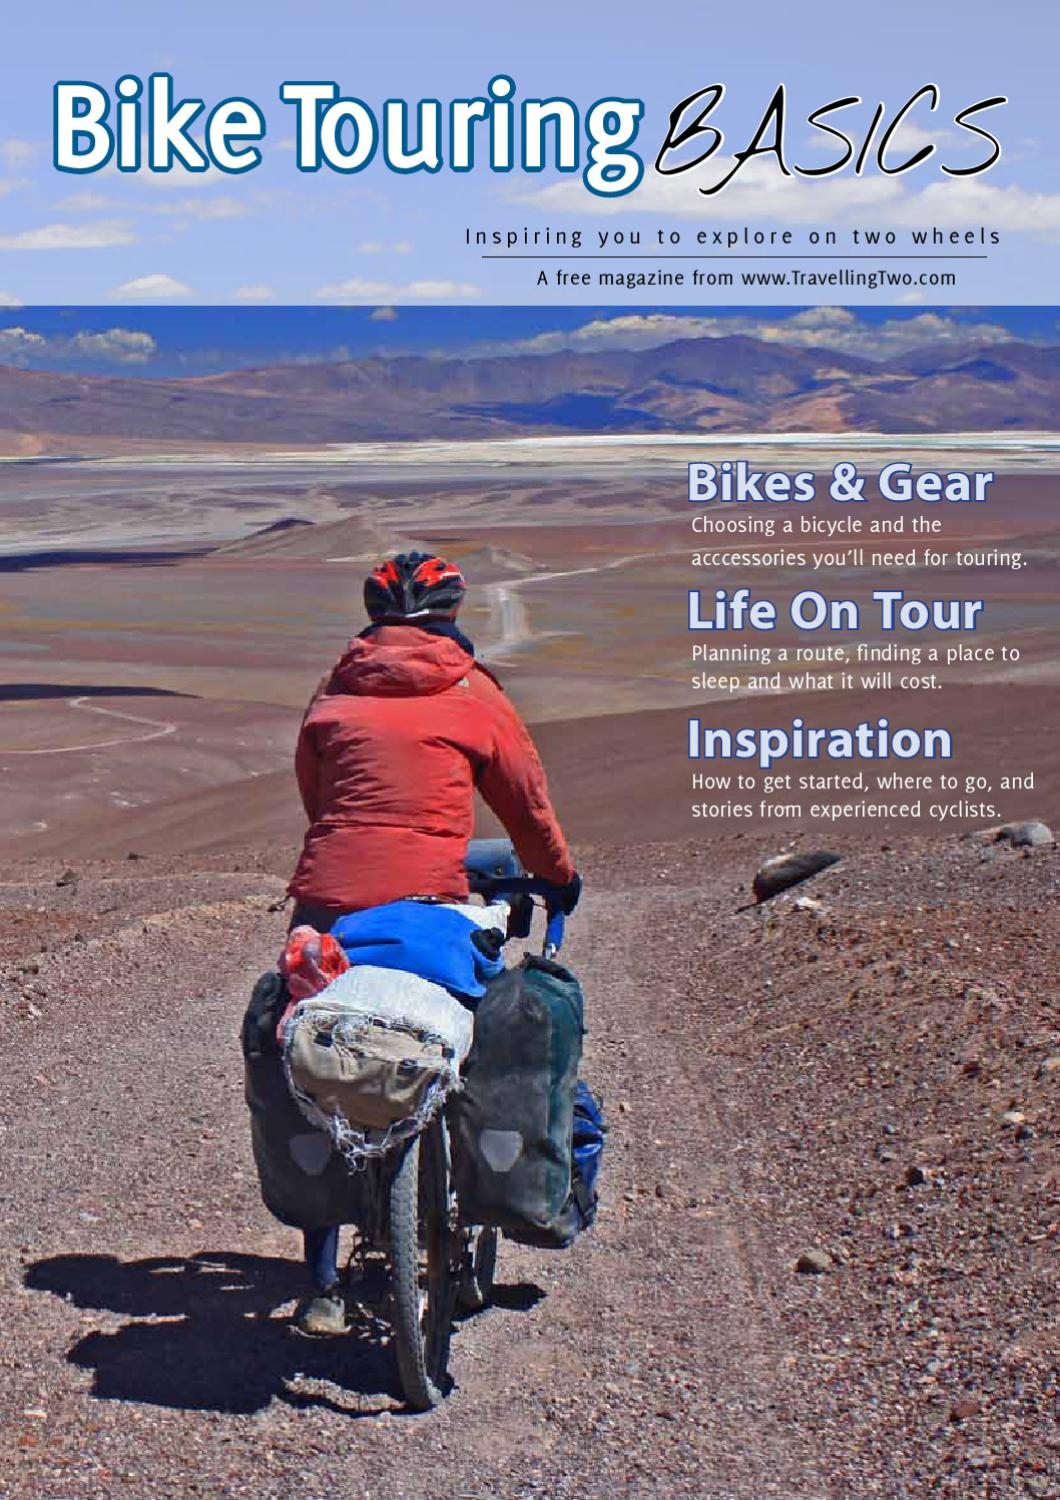 Bike Touring Basics by Doğa Yaman